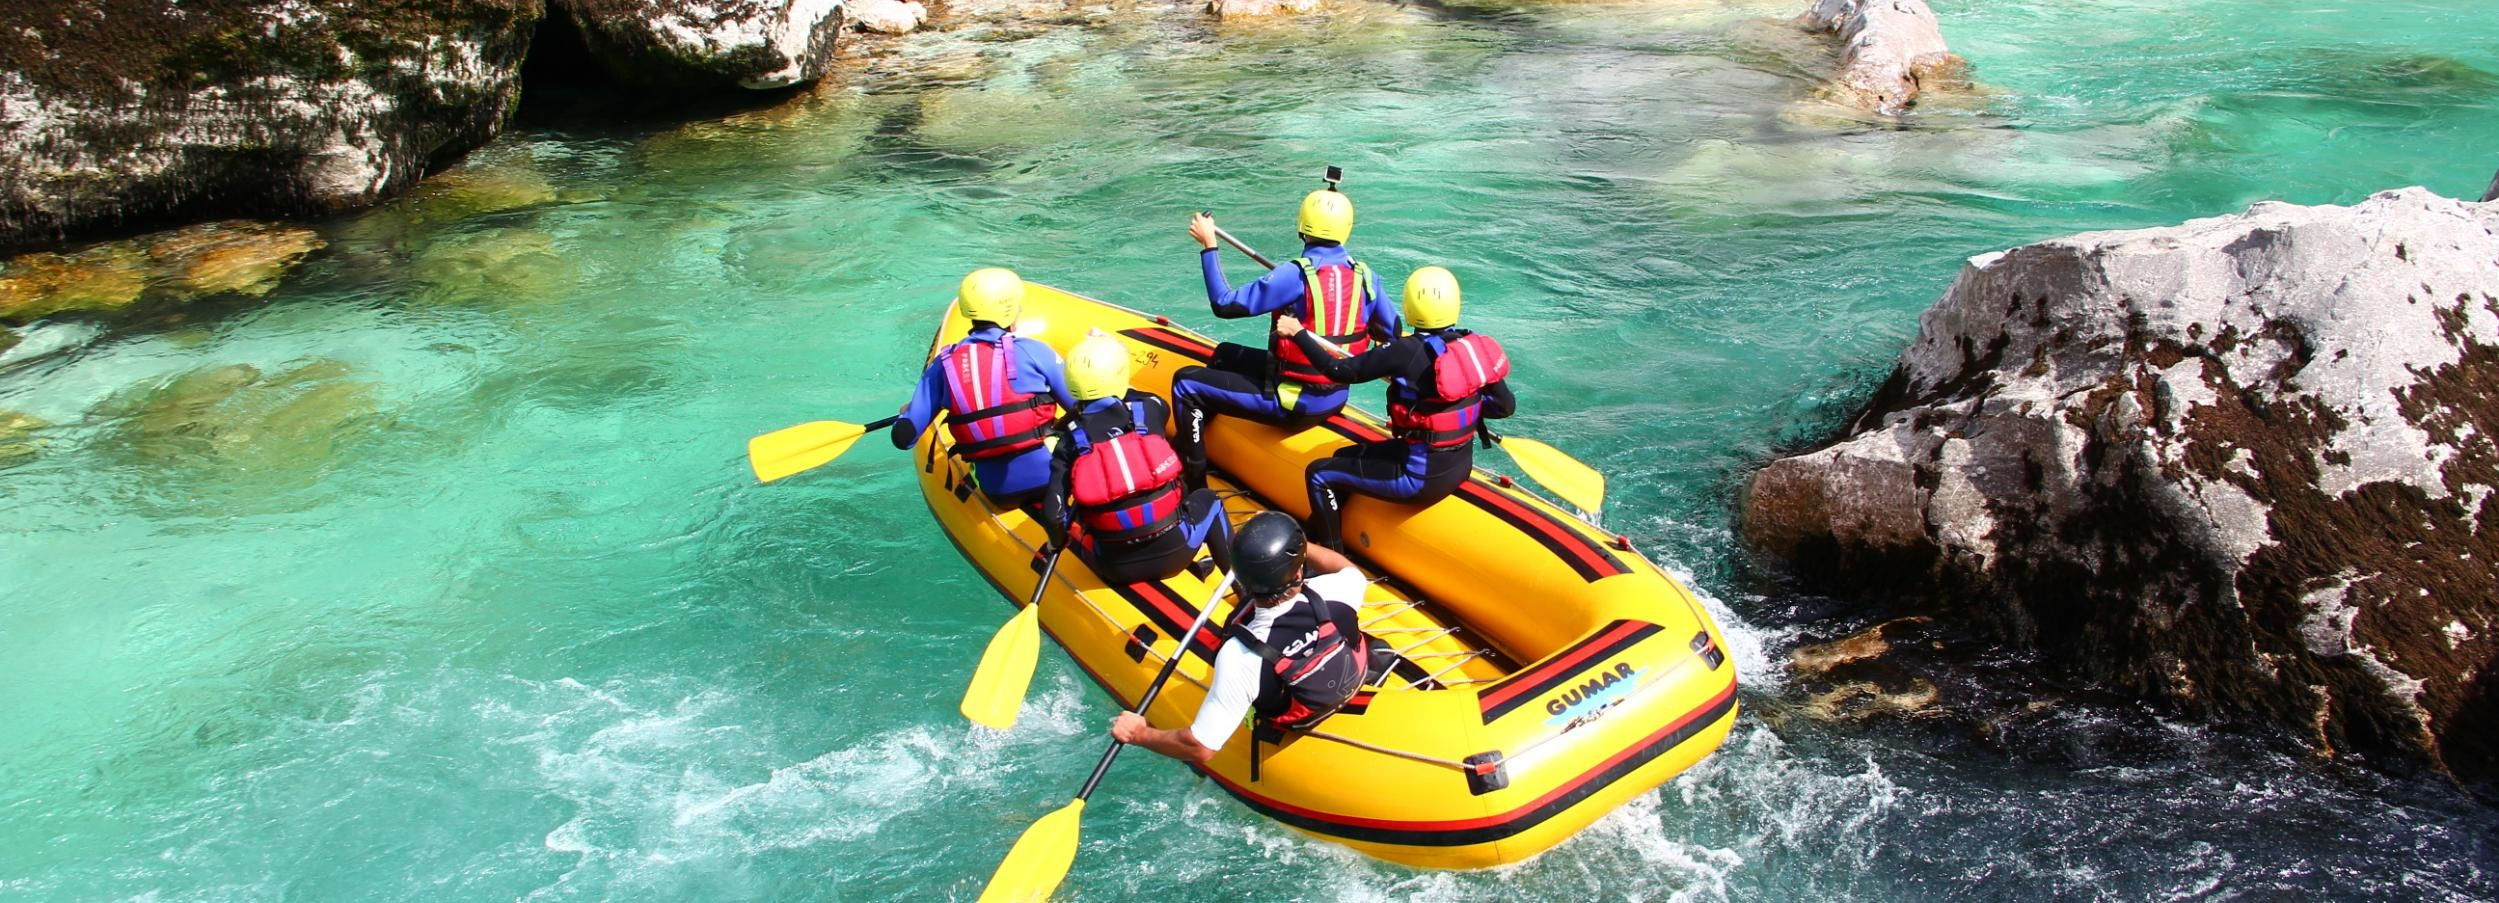 Bovec: Full Day Rafting With A Picnic On Soča River